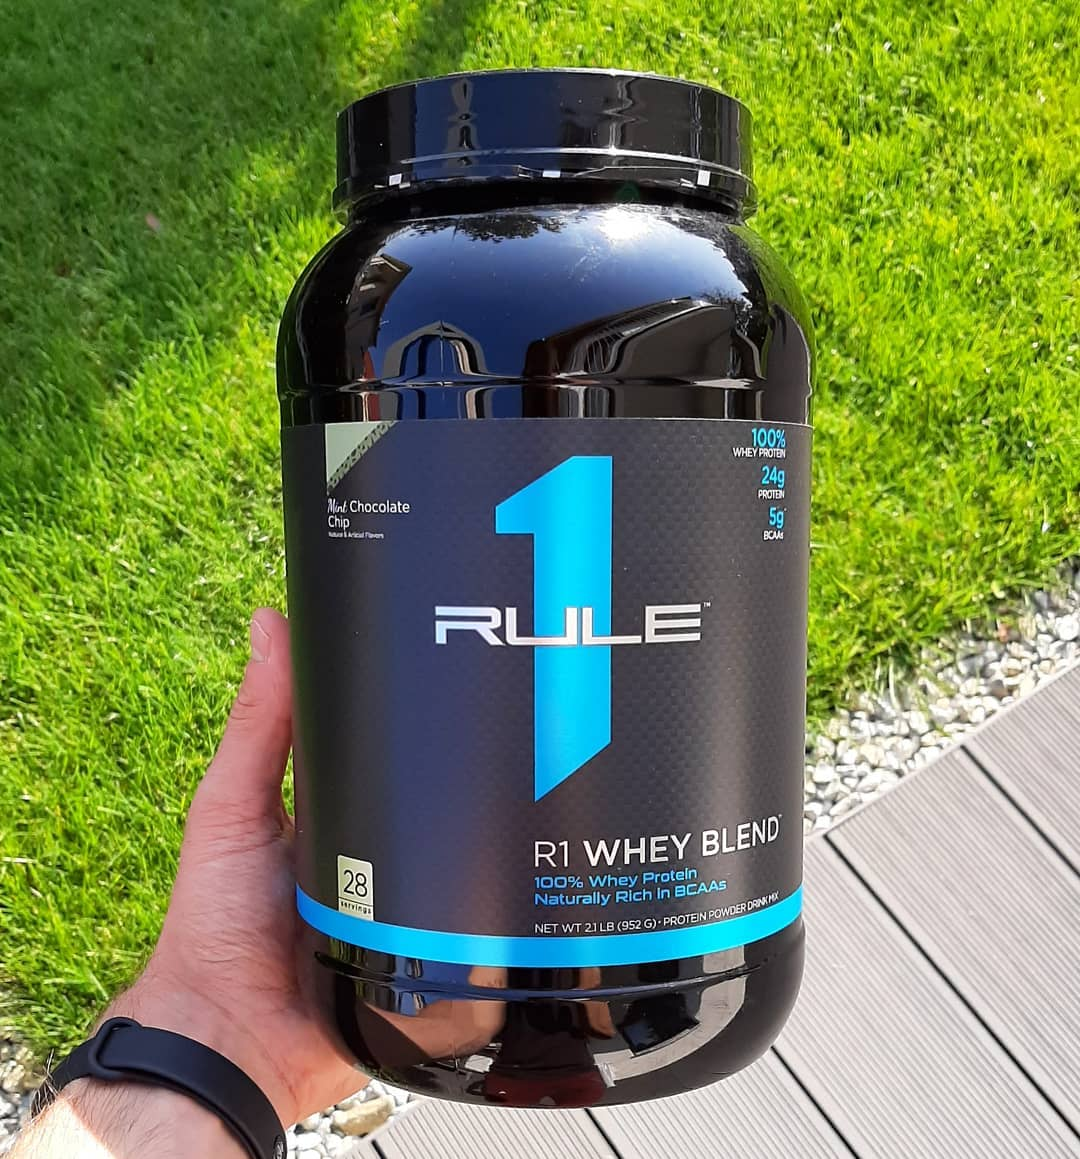 Rule1 Whey Blend Mint Chololate Chip – recenzja!